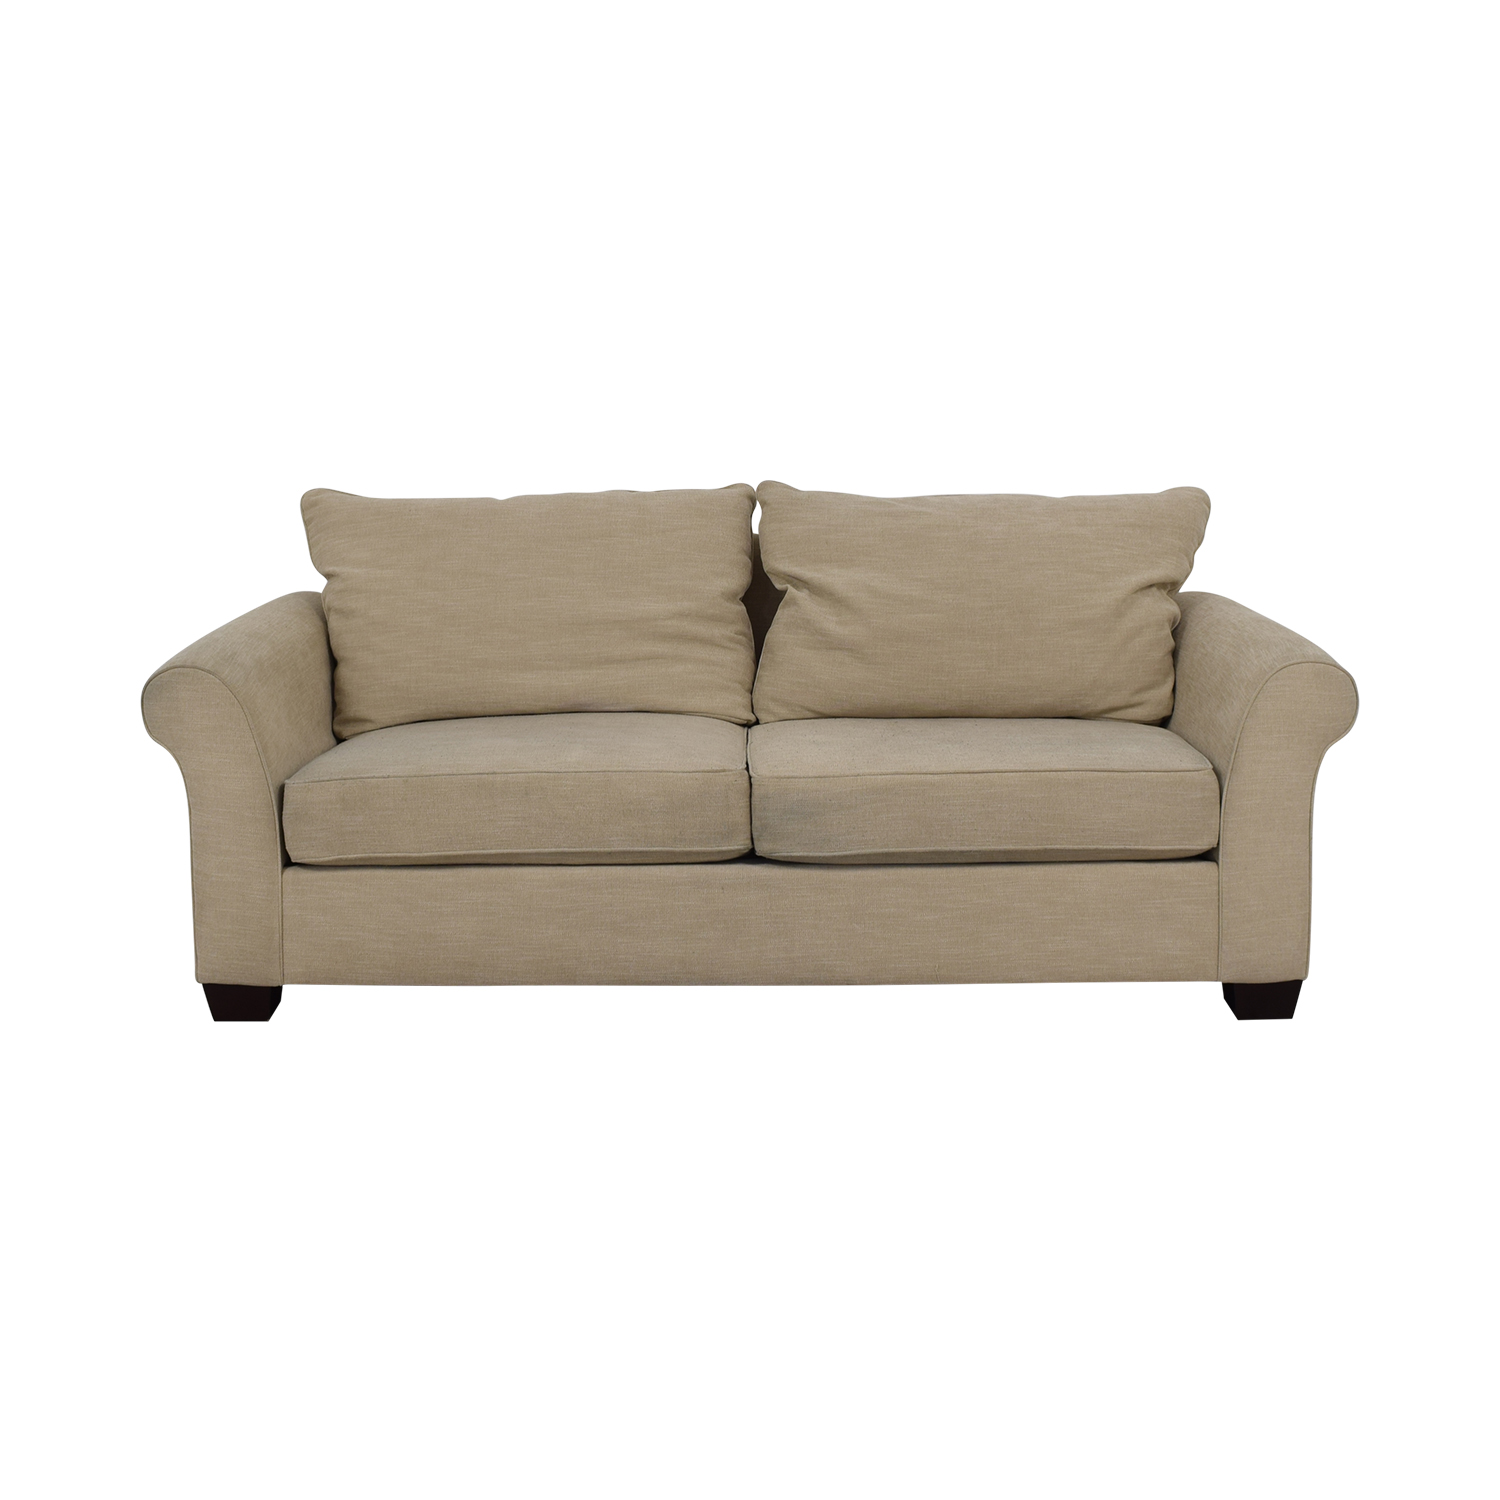 buy Pottery Barn Pottery Barn Grey Roll Arm Upholstered Couch online